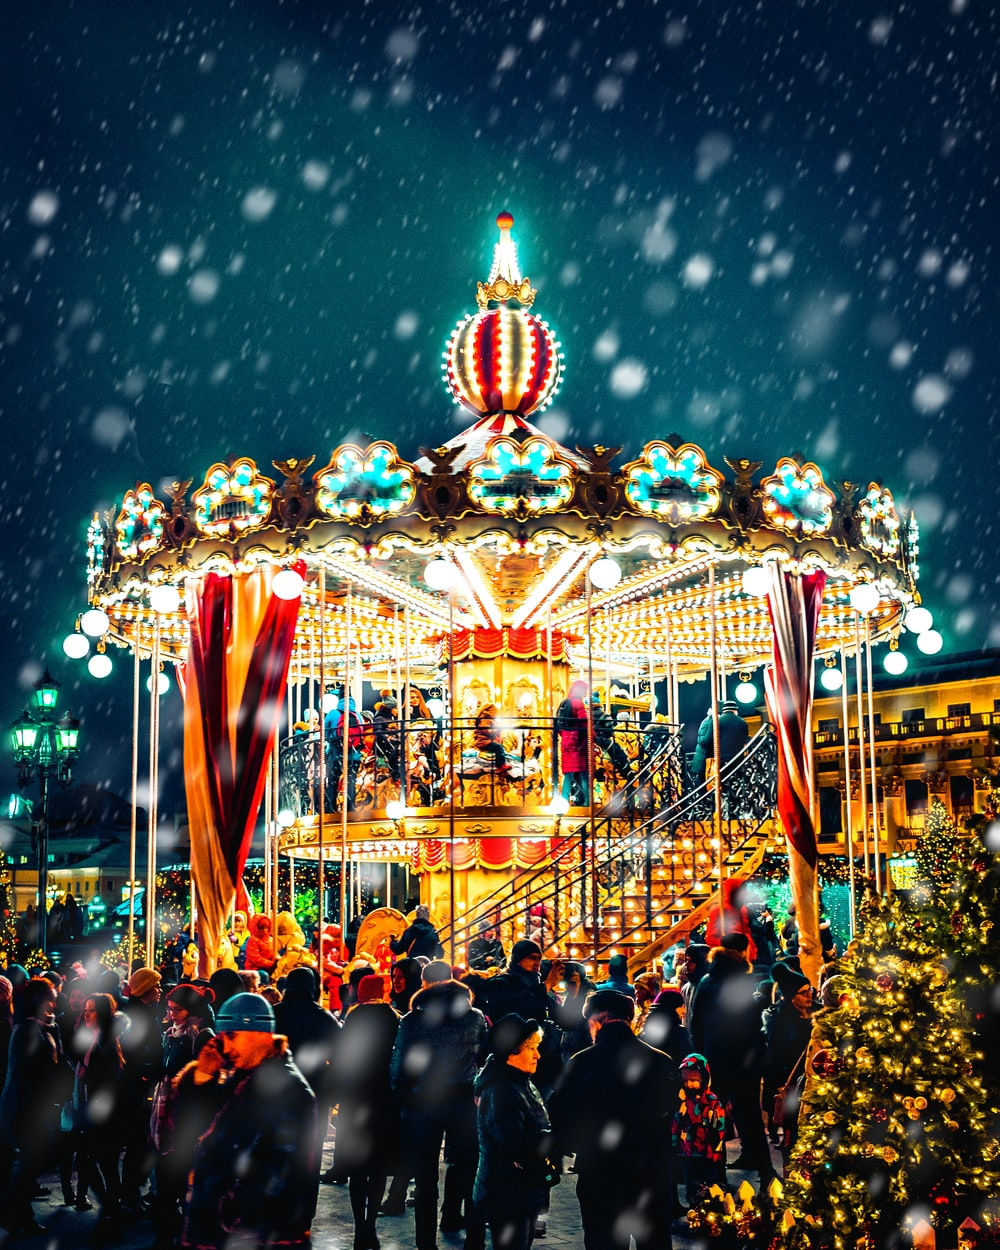 carousel with snow pouring down